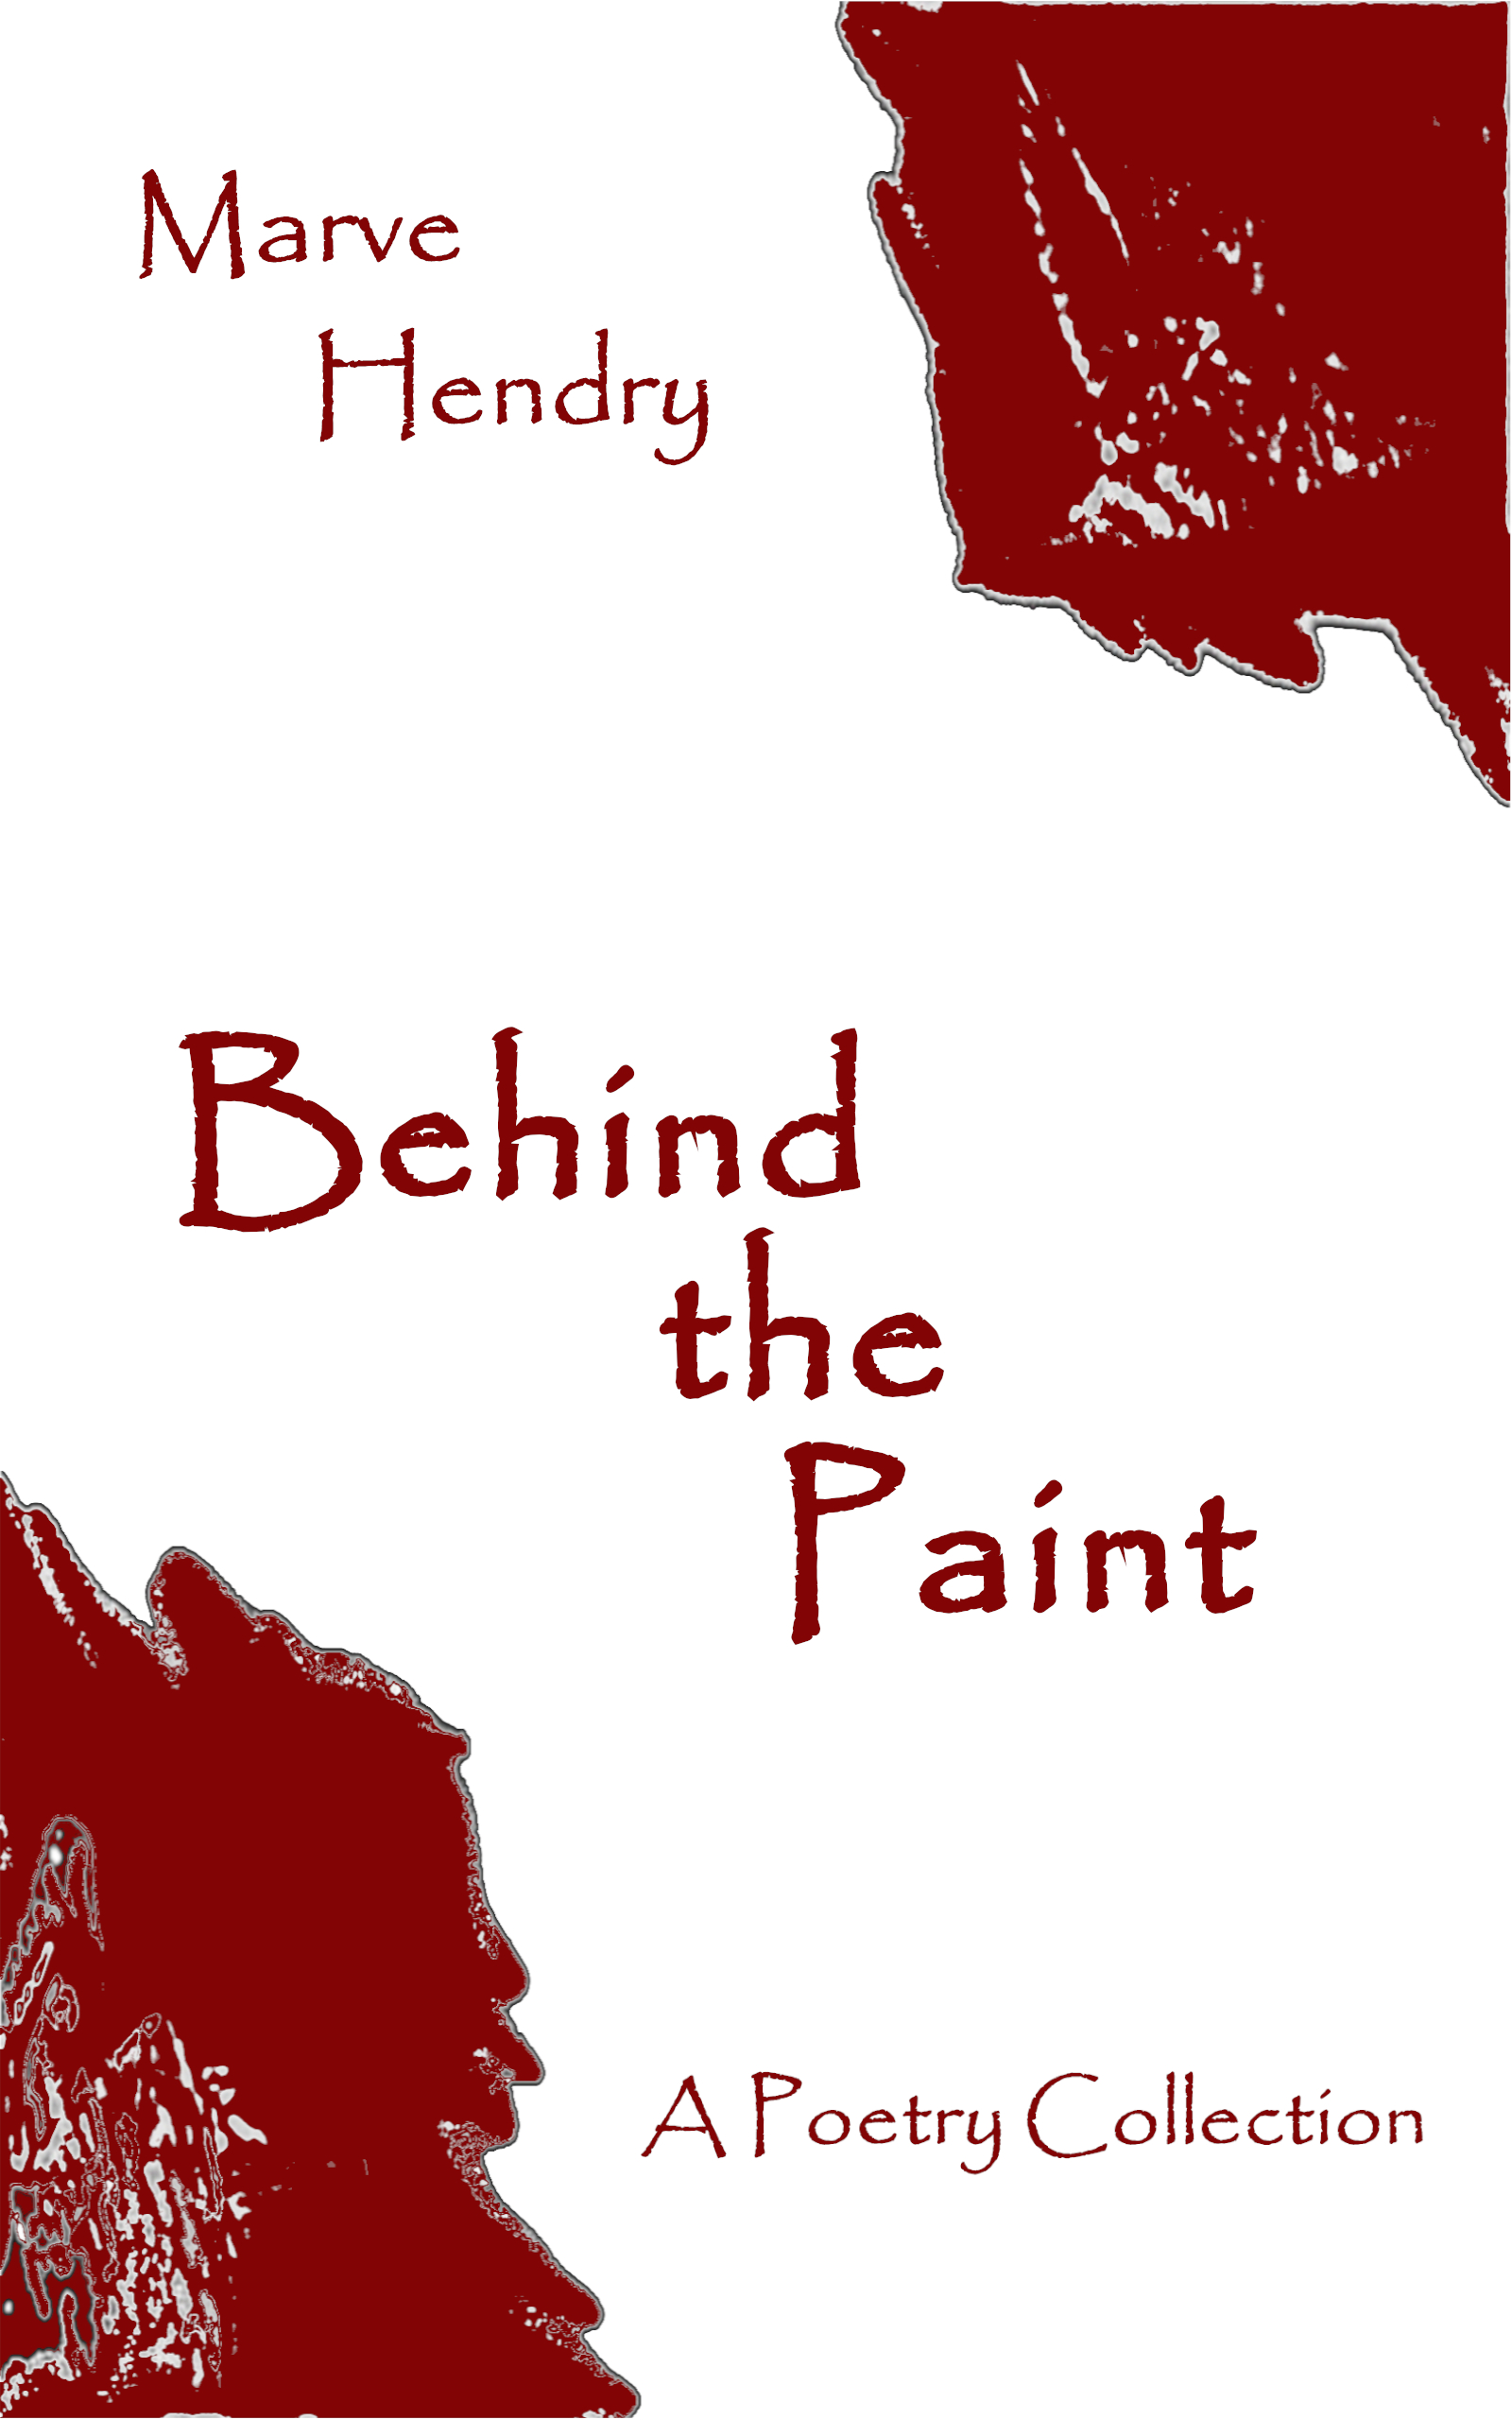 Behind the Paint: A Poetry Collection